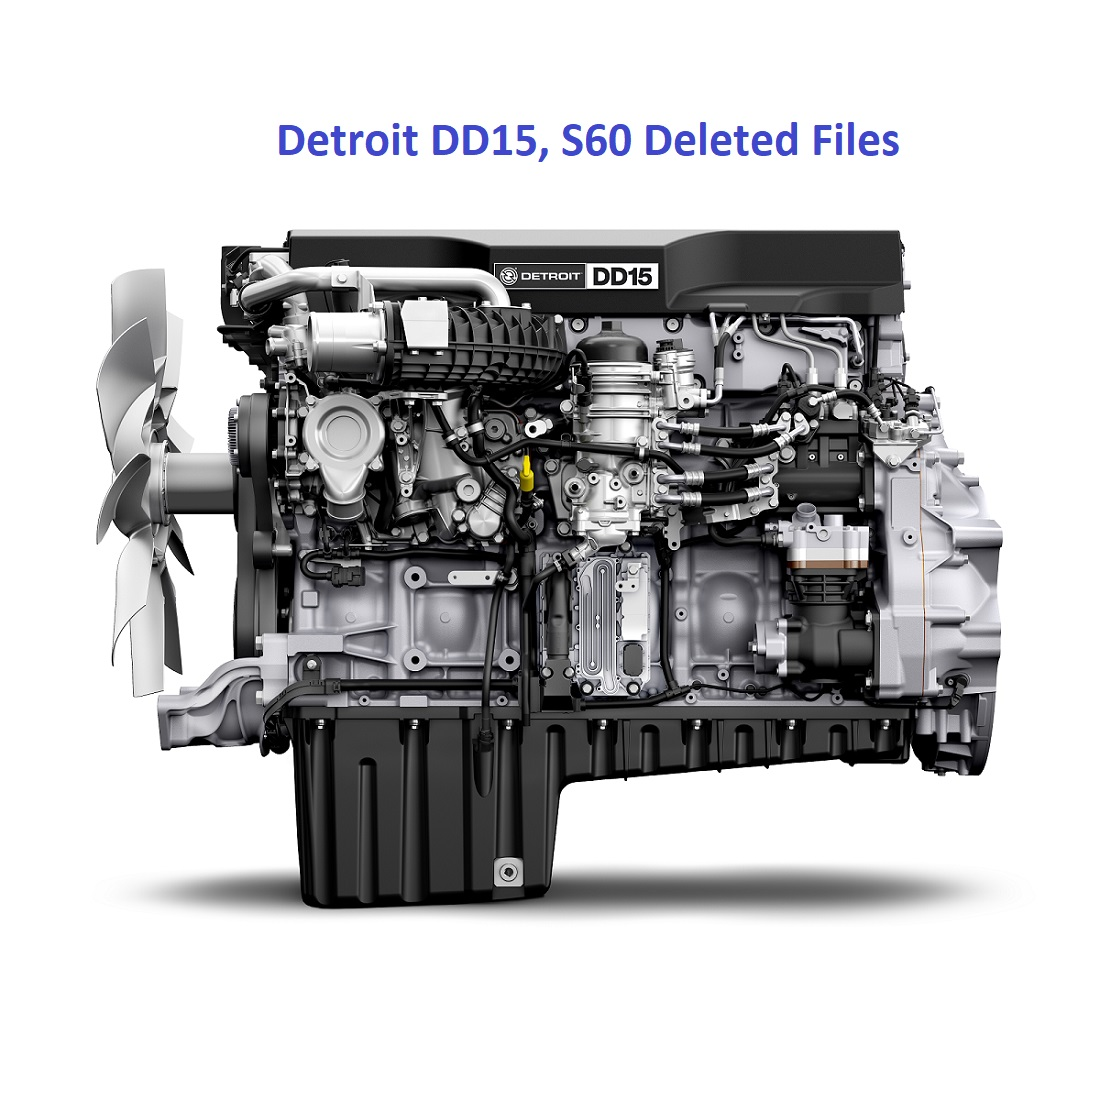 Detroit DD15, S60 Deleted Files